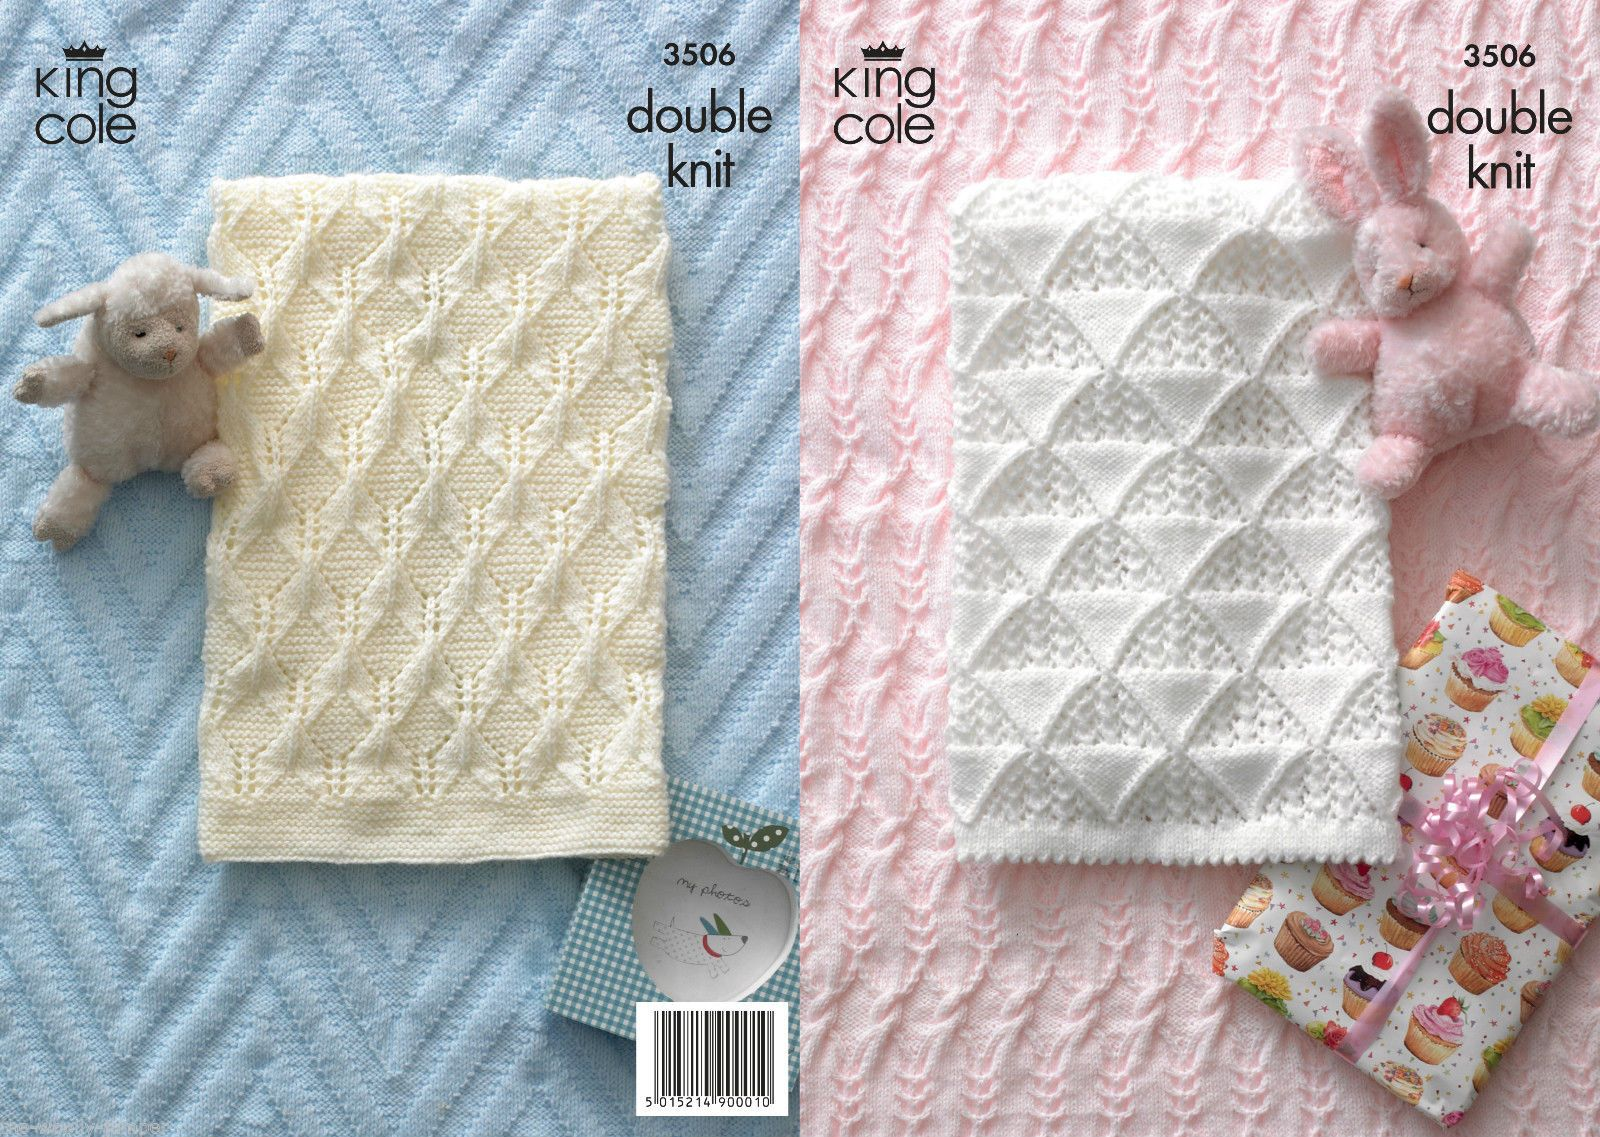 3506 - KING COLE COMFORT DK BABY BLANKET KNITTING PATTERN